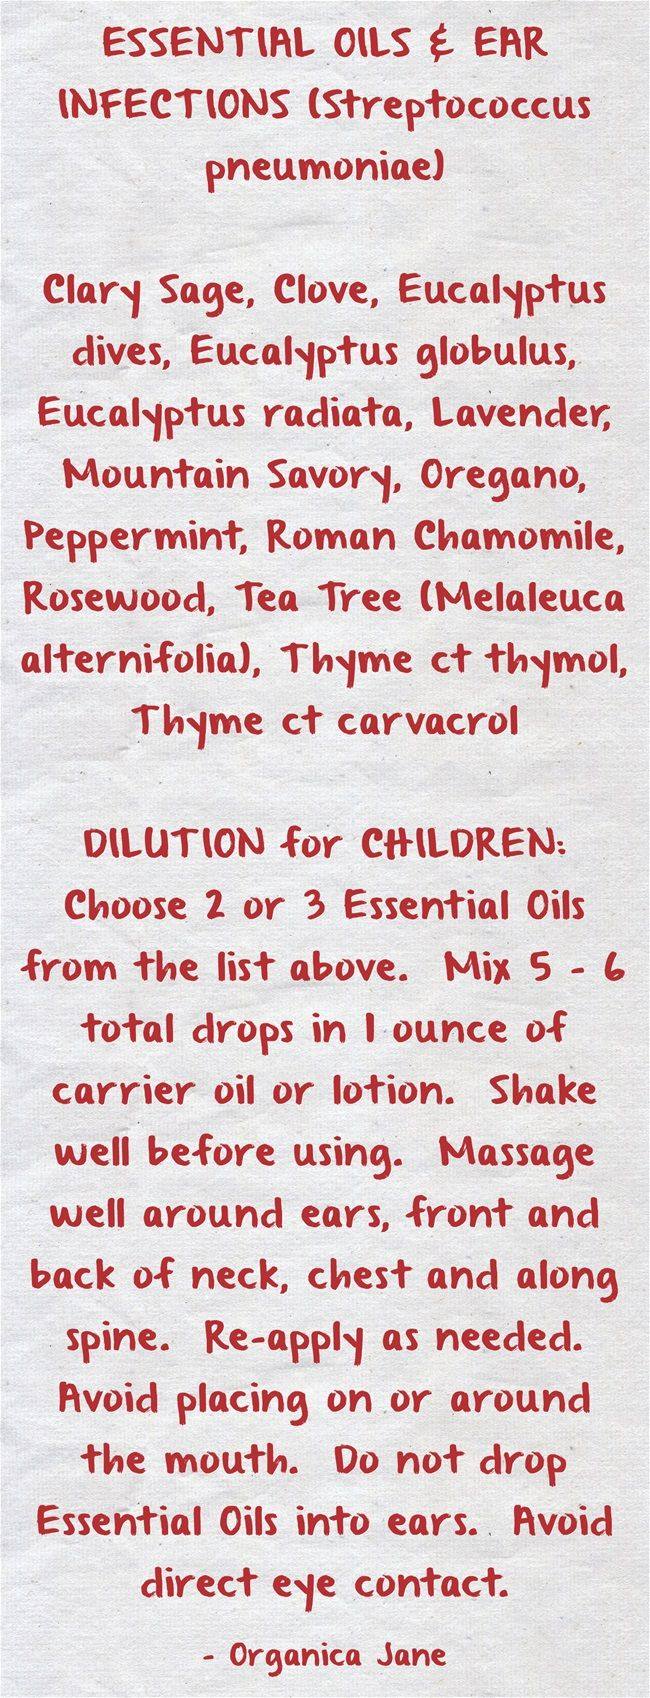 ESSENTIAL OILS & EAR INFECTIONS (Streptococcus pneumoniae) Clary Sage, Clove, Eucalyptus dives, Eucalyptus globulus, Eucalyptus radiata, Lavender, Mountain Savory, Oregano, Peppermint, Roman Chamomile, Rosewood, Tea Tree (Melaleuca alternifolia), Thyme ct thymol, Thyme ct carvacrol DILUTION for CHILDREN: Choose 2 or 3 Essential Oils from the list above. Mix 5 - 6 total drops in 1 ounce of carrier oil or lotion. Shake well before using. Massage well around ears, front...